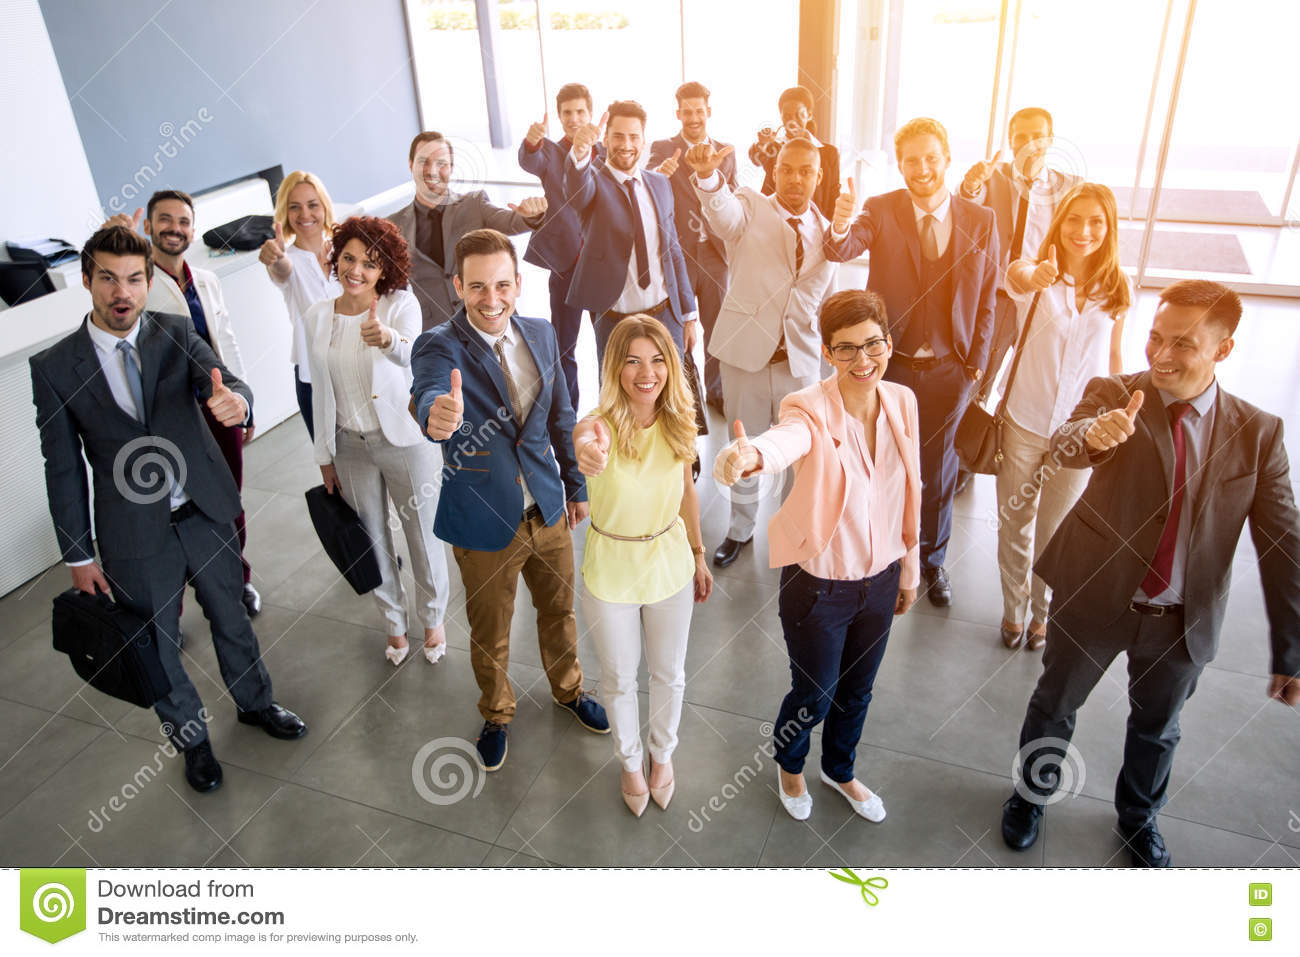 Download Thump up team stock image. Image of attractive, partners - 78701647